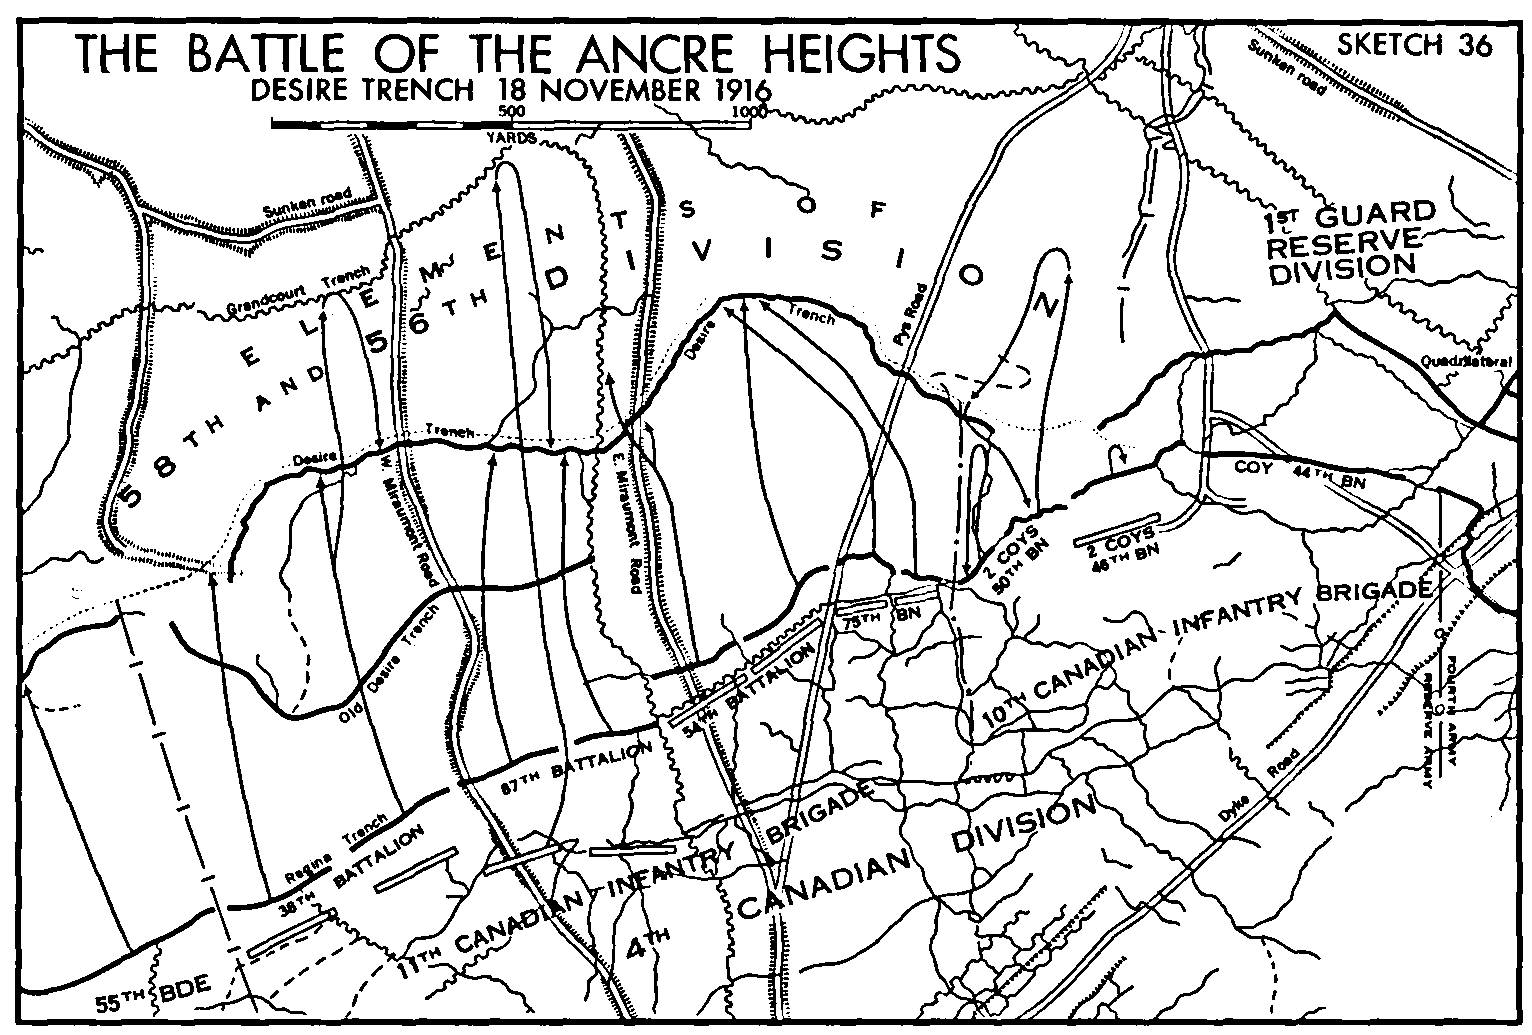 canadian expeditionary force 1914 1919 the last day of the somme Ozark Division battle map last day of the somme nov 18 1916